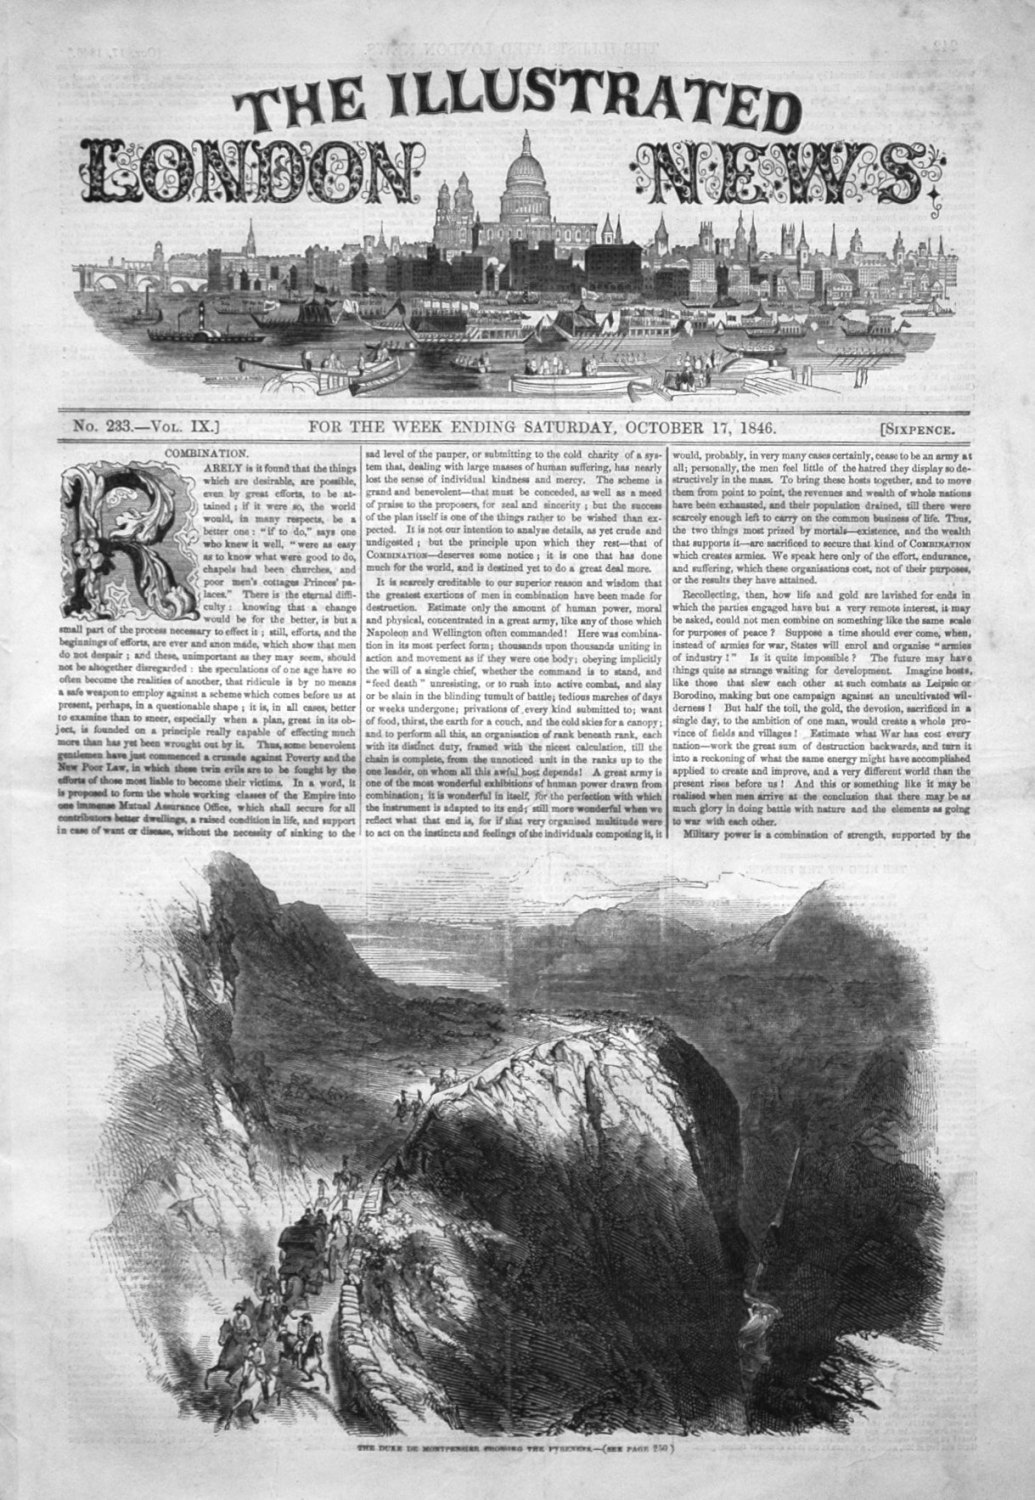 Illustrated London News October 17th 1846.